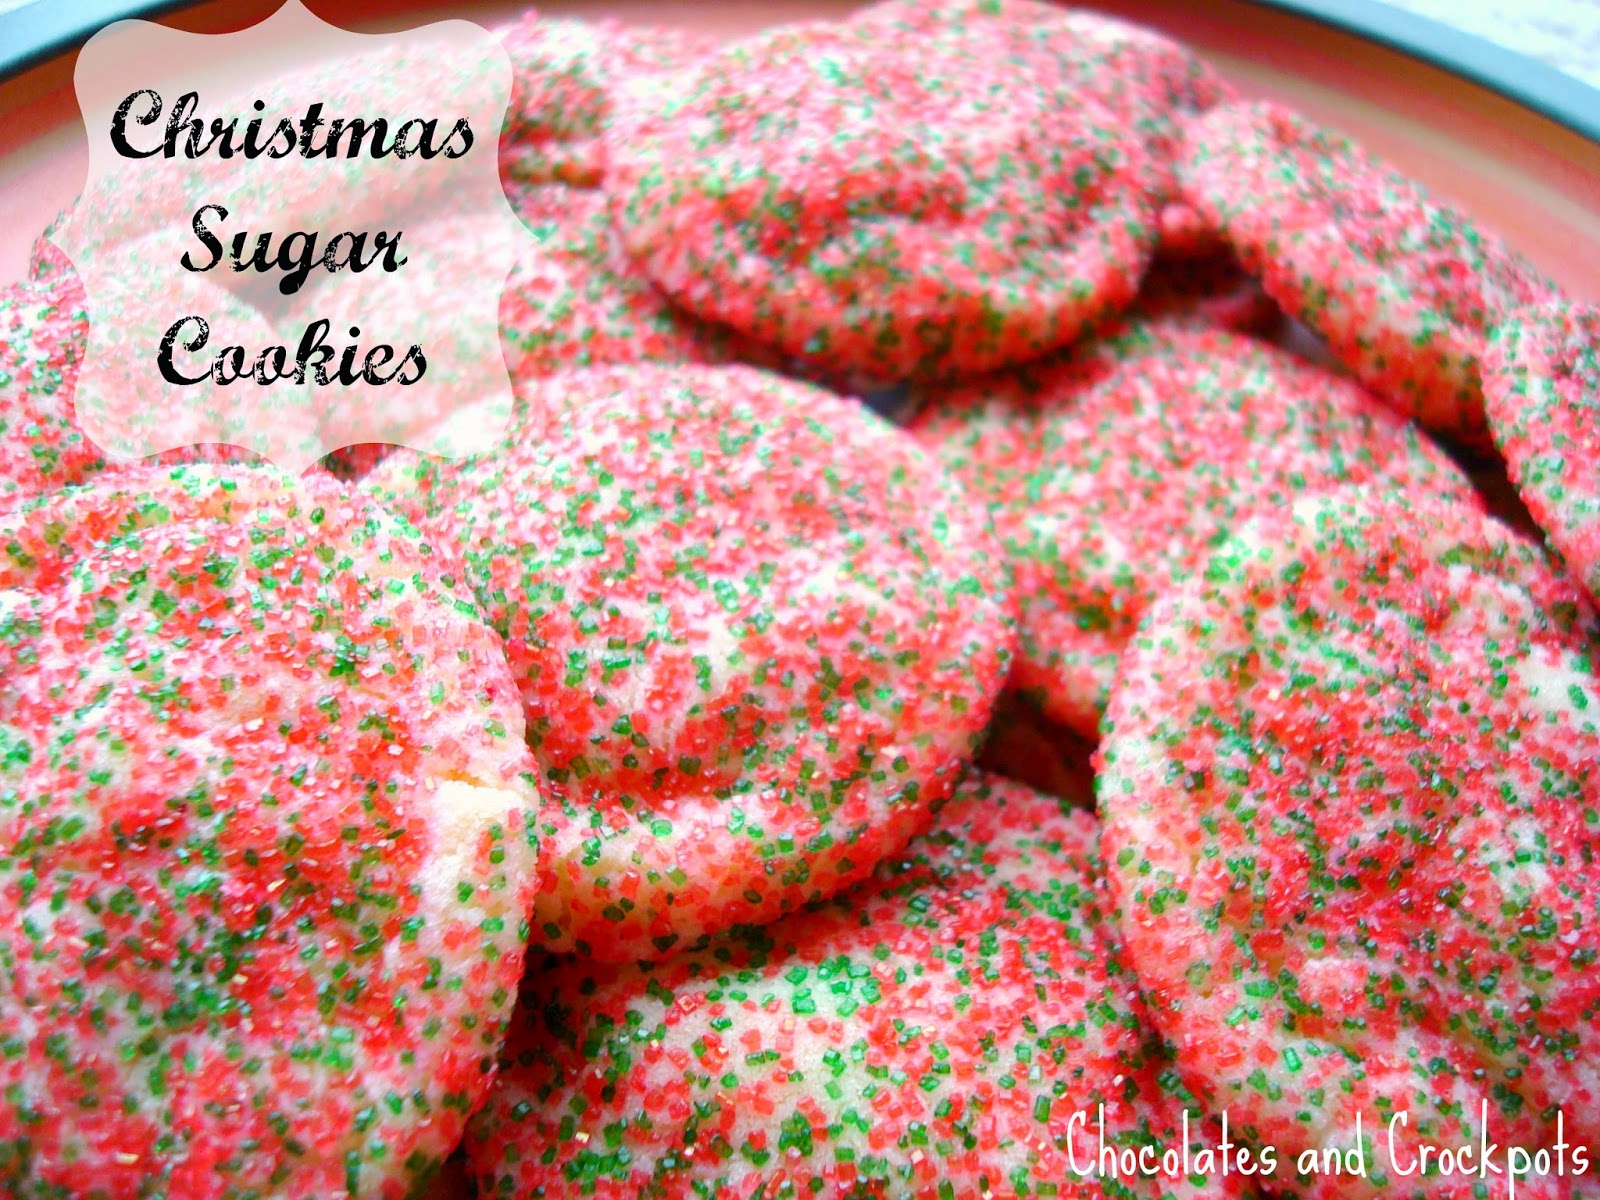 Christmas cookie recipe with almond extract